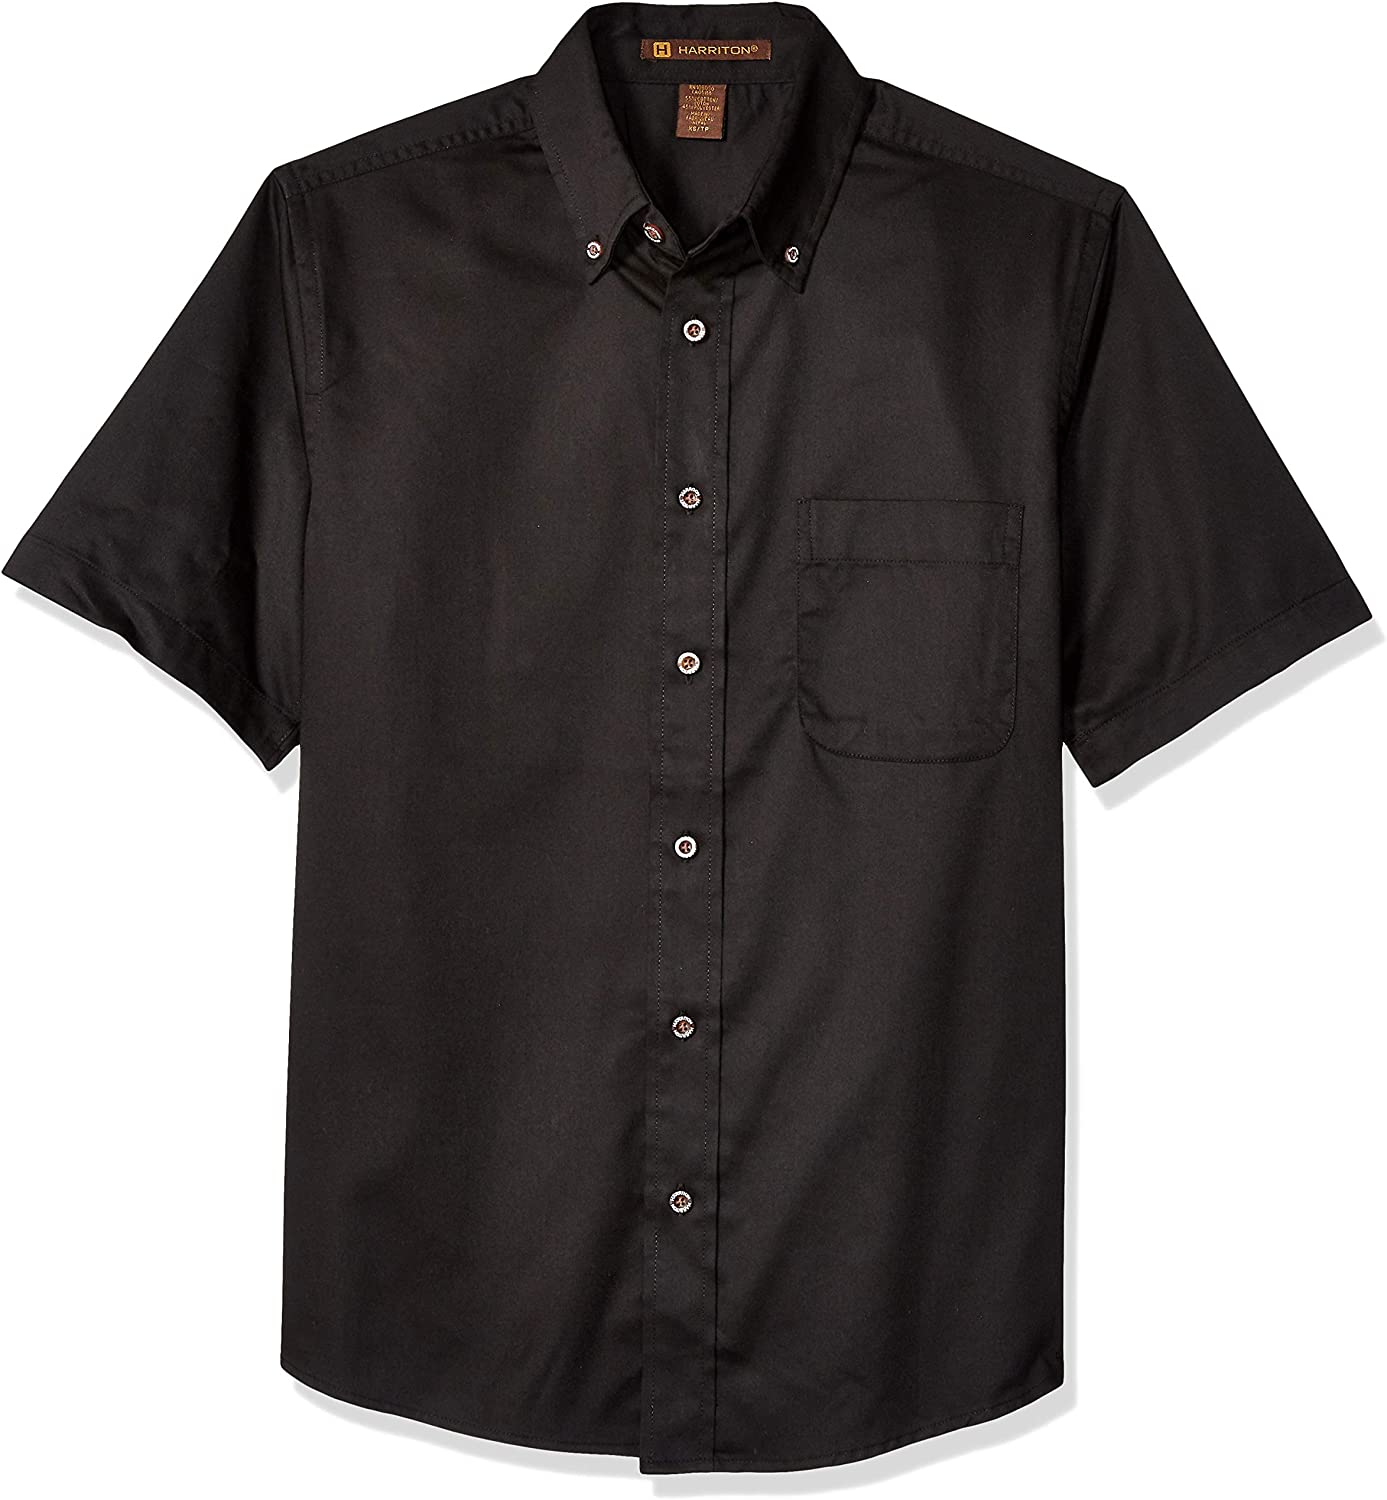 Harritton Men's Twill with Stain Release Short Sleeve Dress Shirt, Black, X